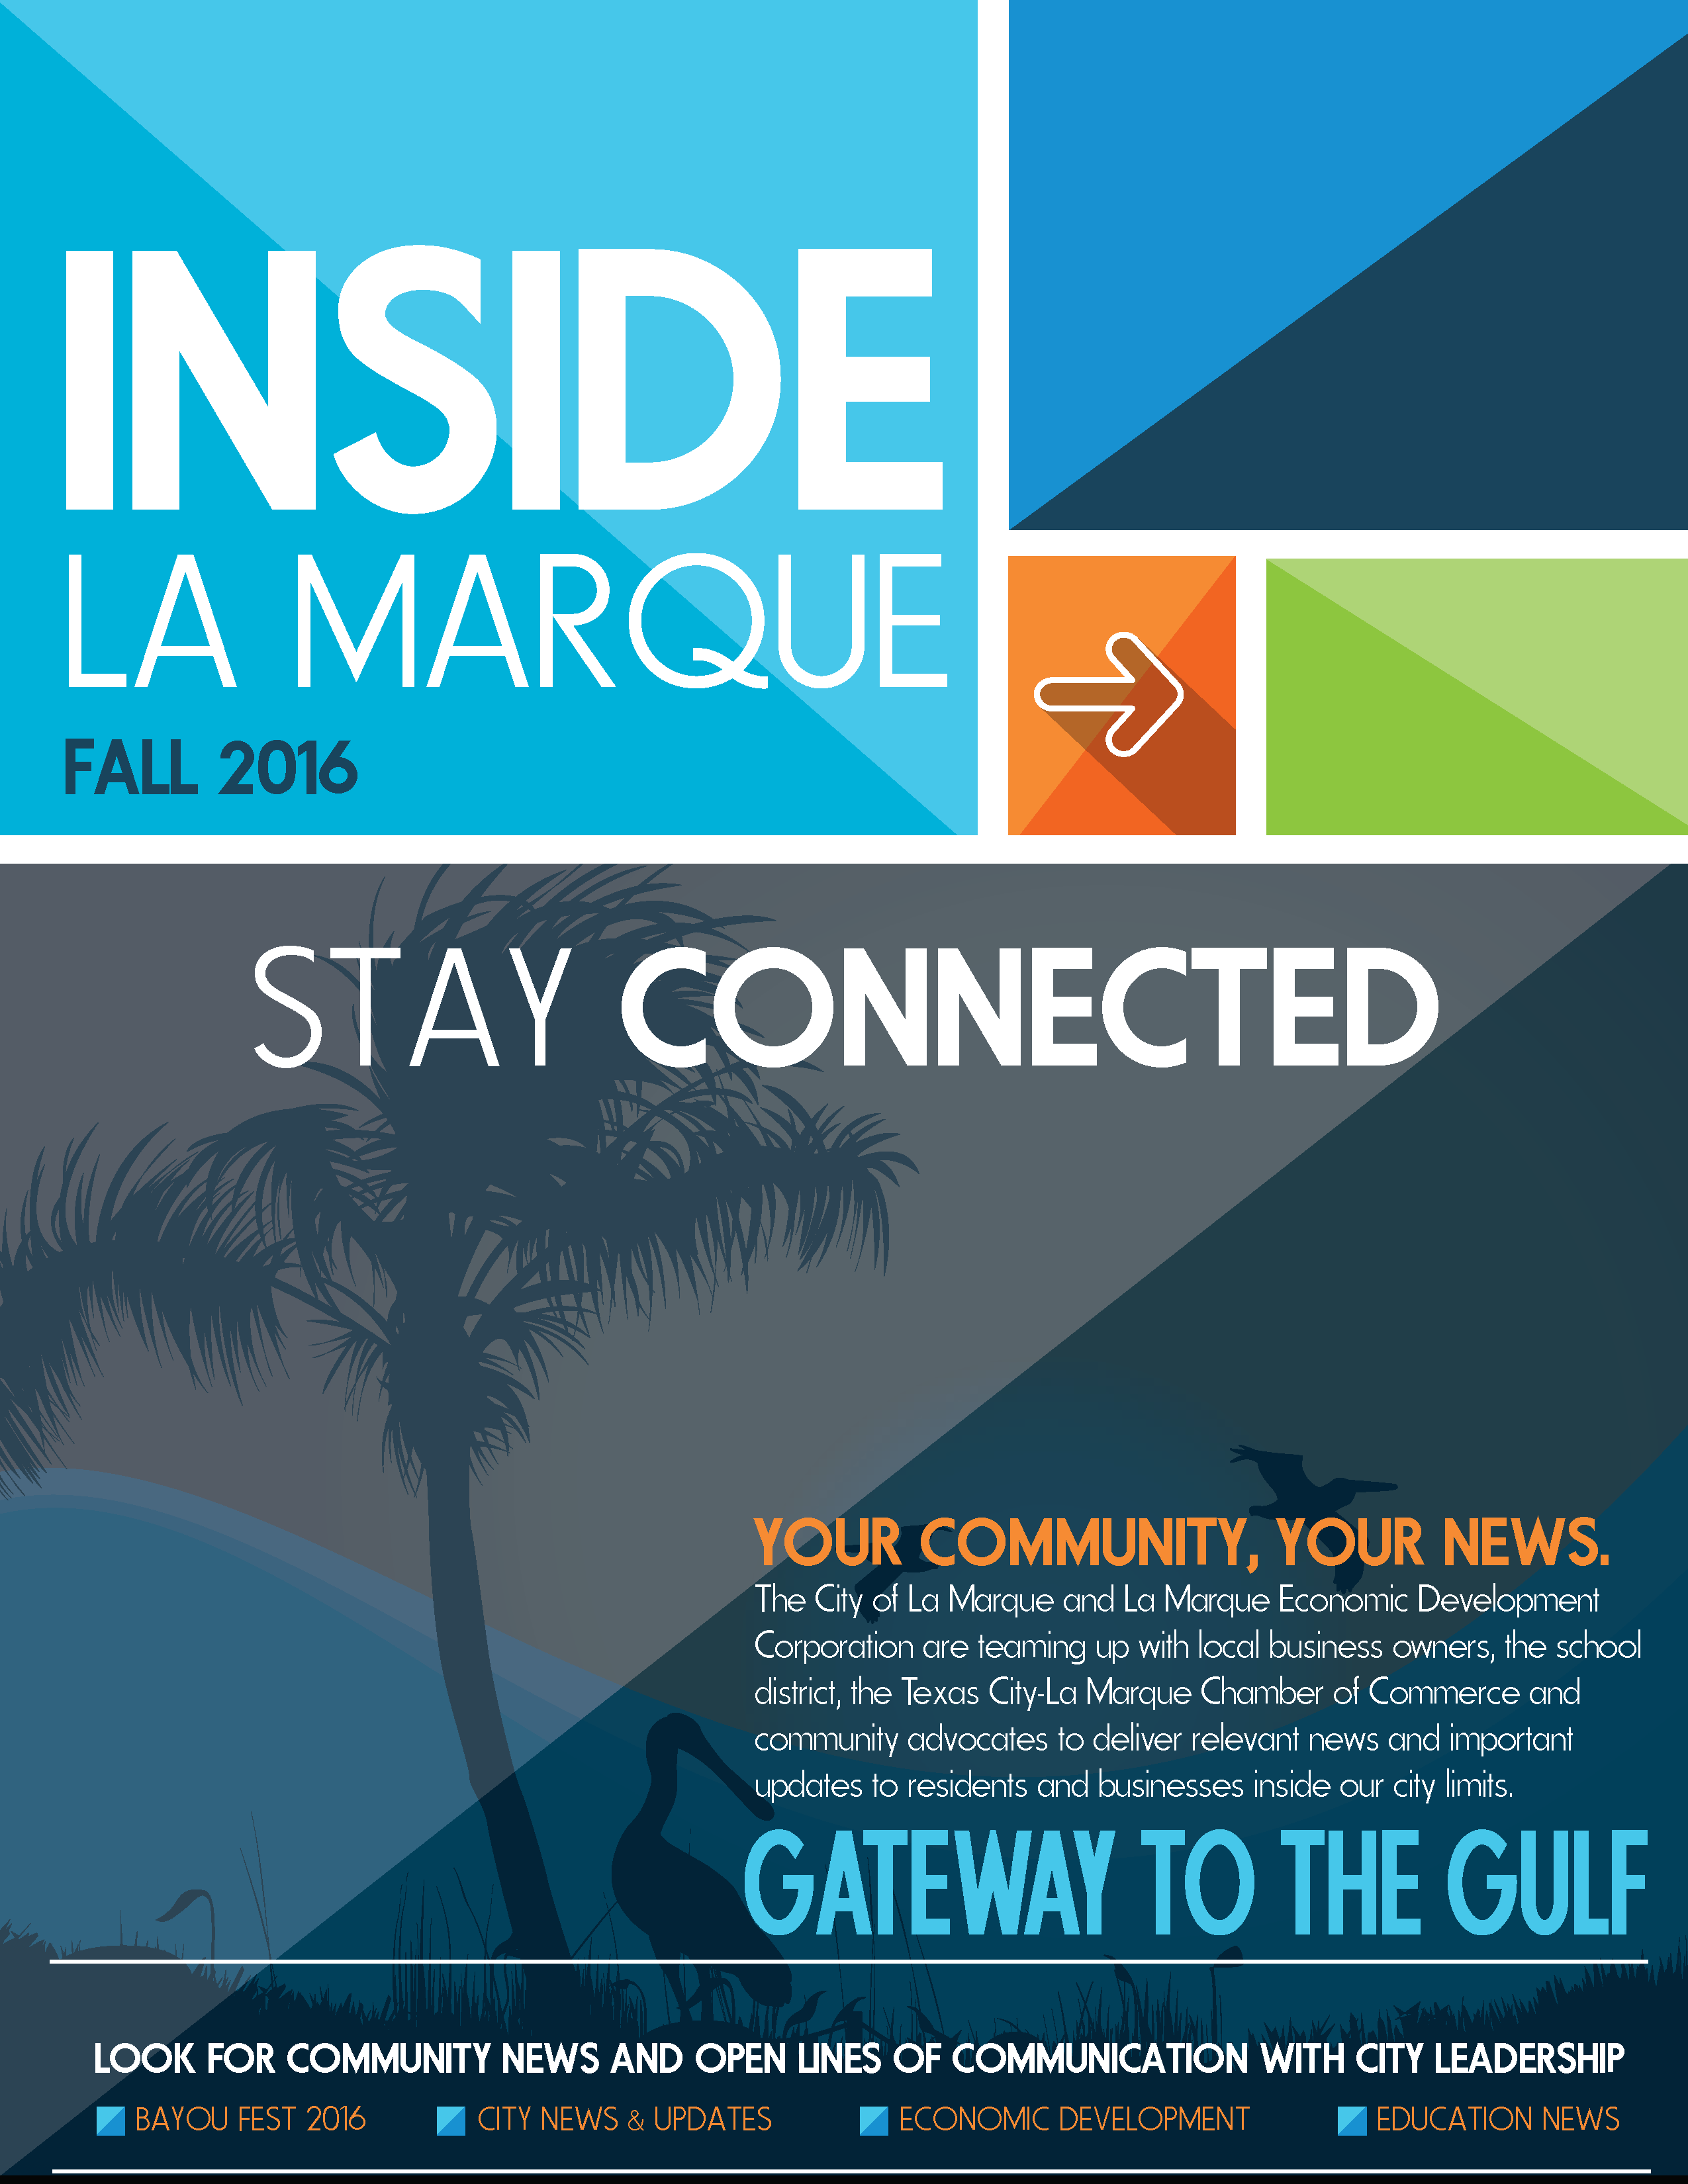 Volume 1_Cover_Inside La Marque_Fall 2016_